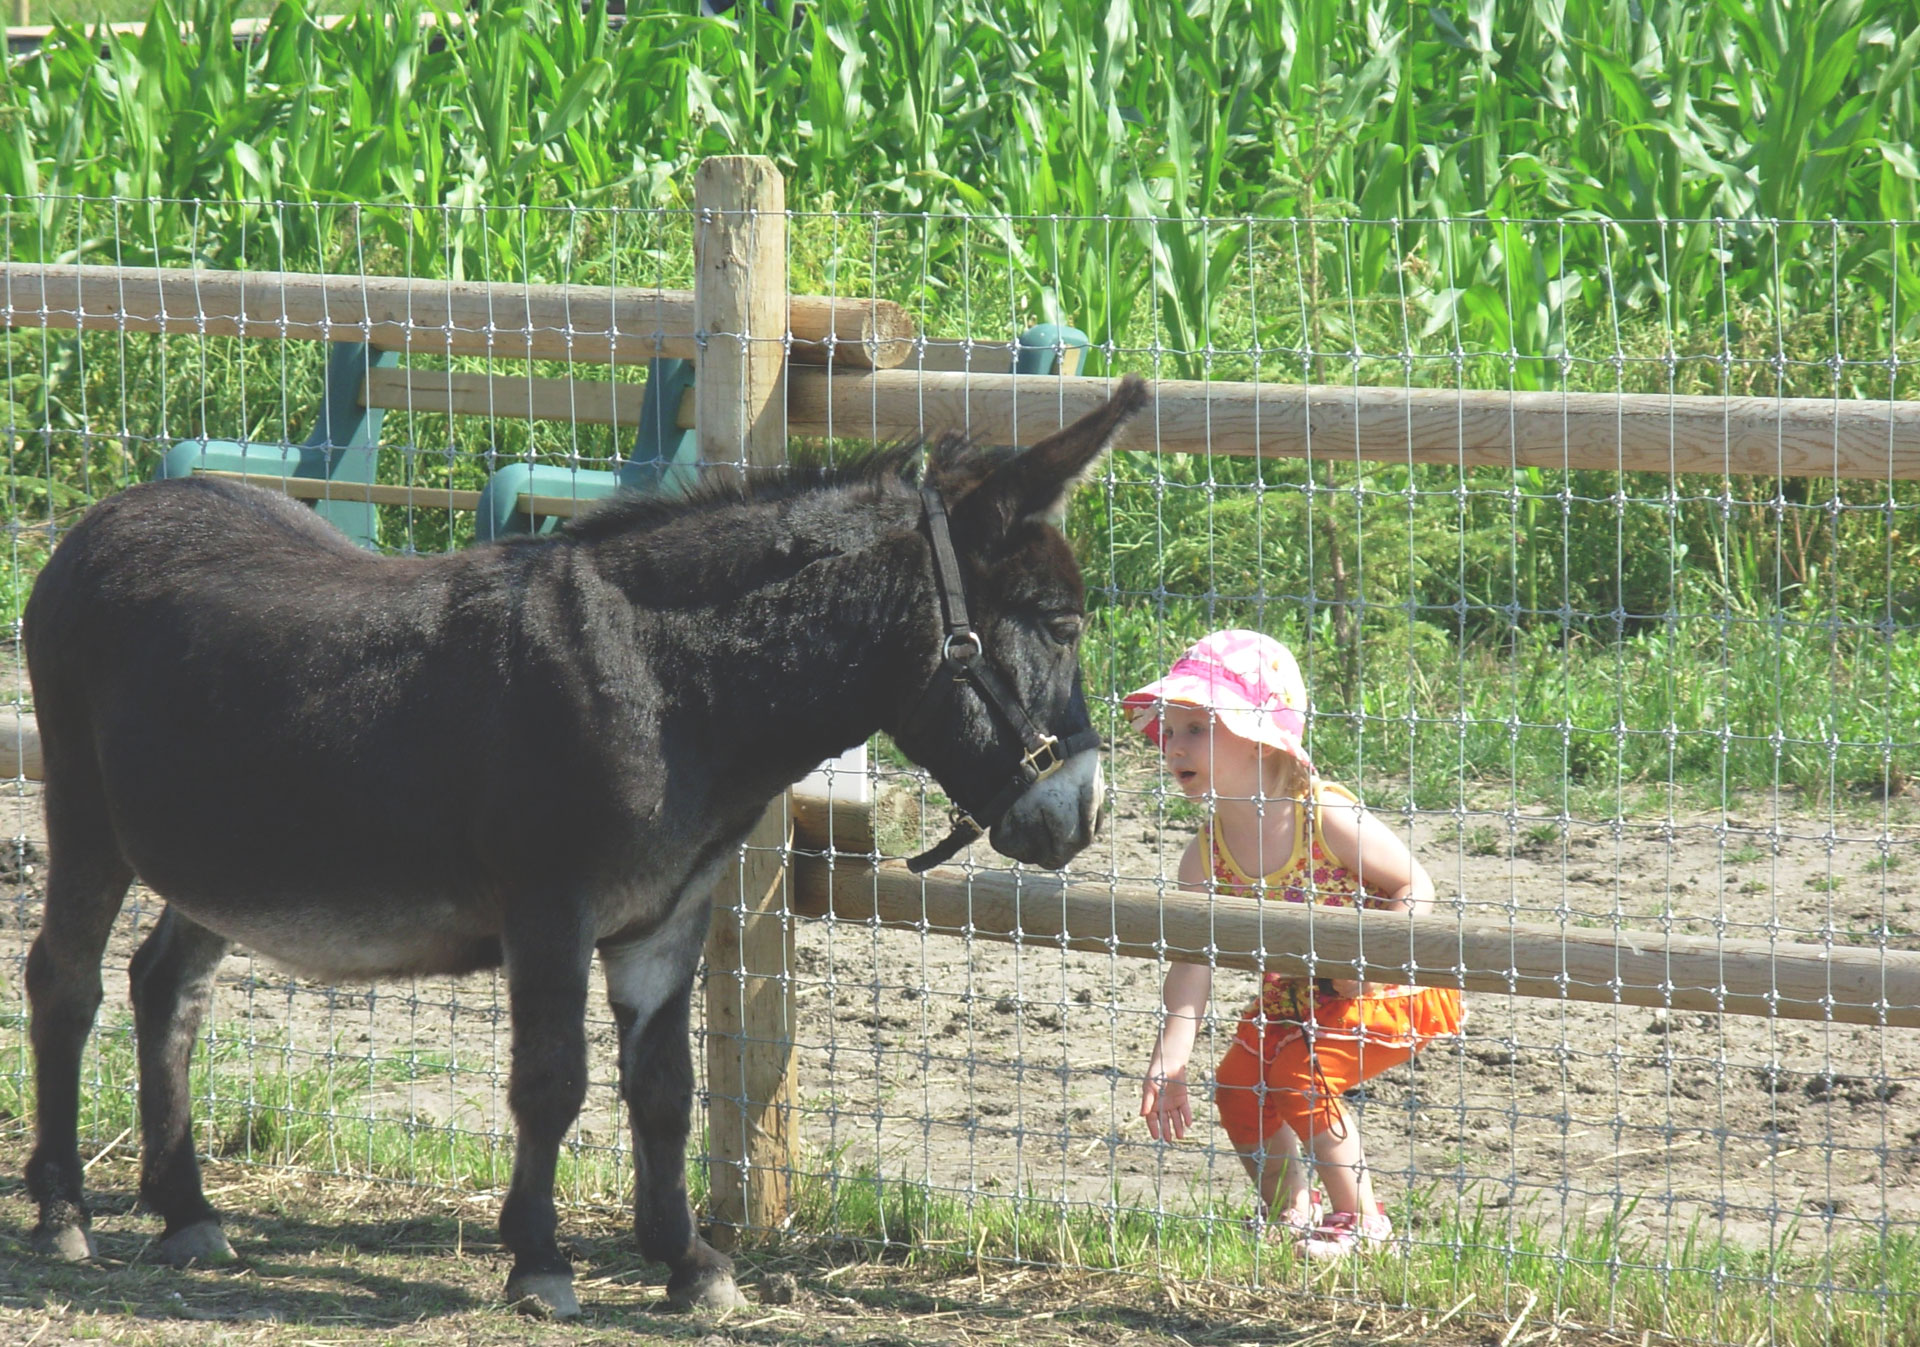 Enjoy a day on the farm with friends and family